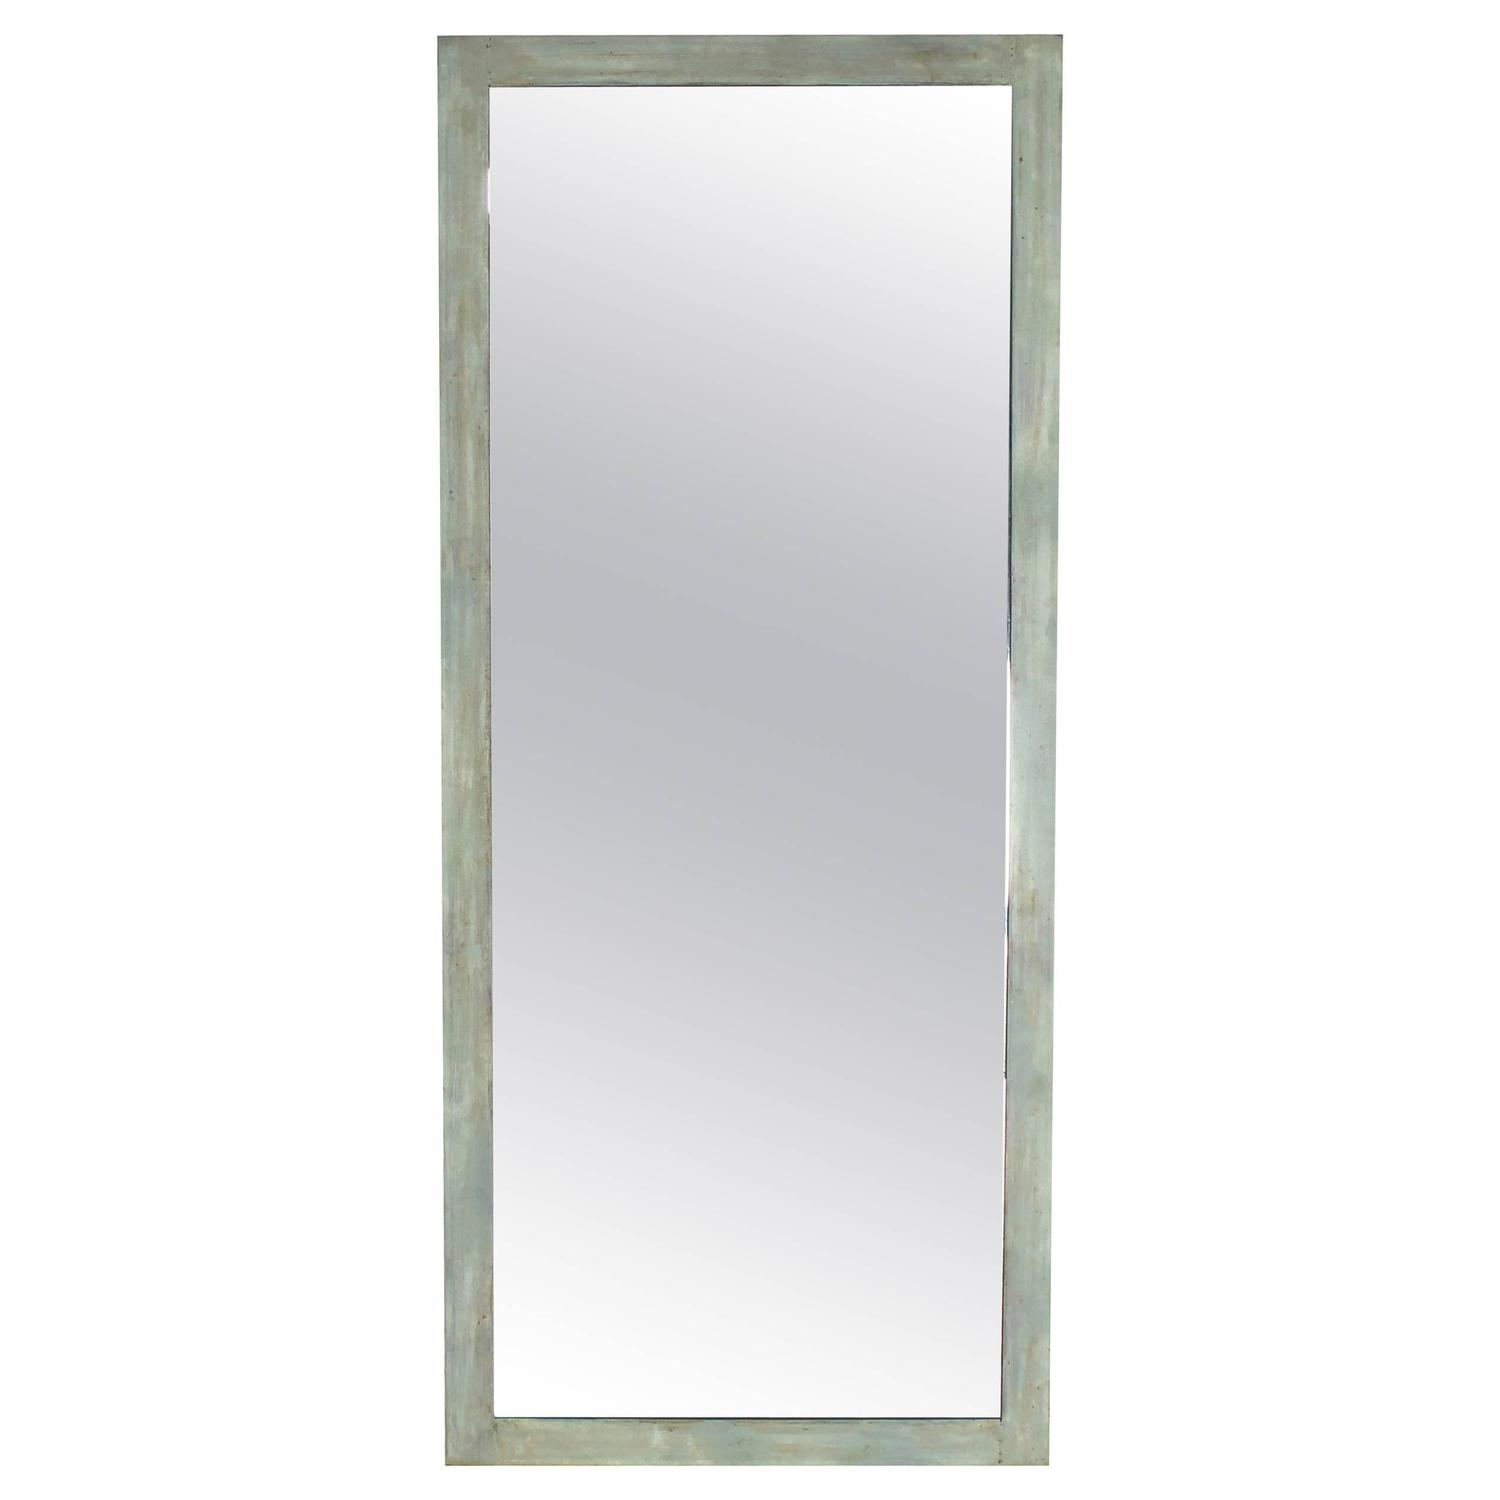 Large wall mirror for sale at 1stdibs for Mirrors for sale